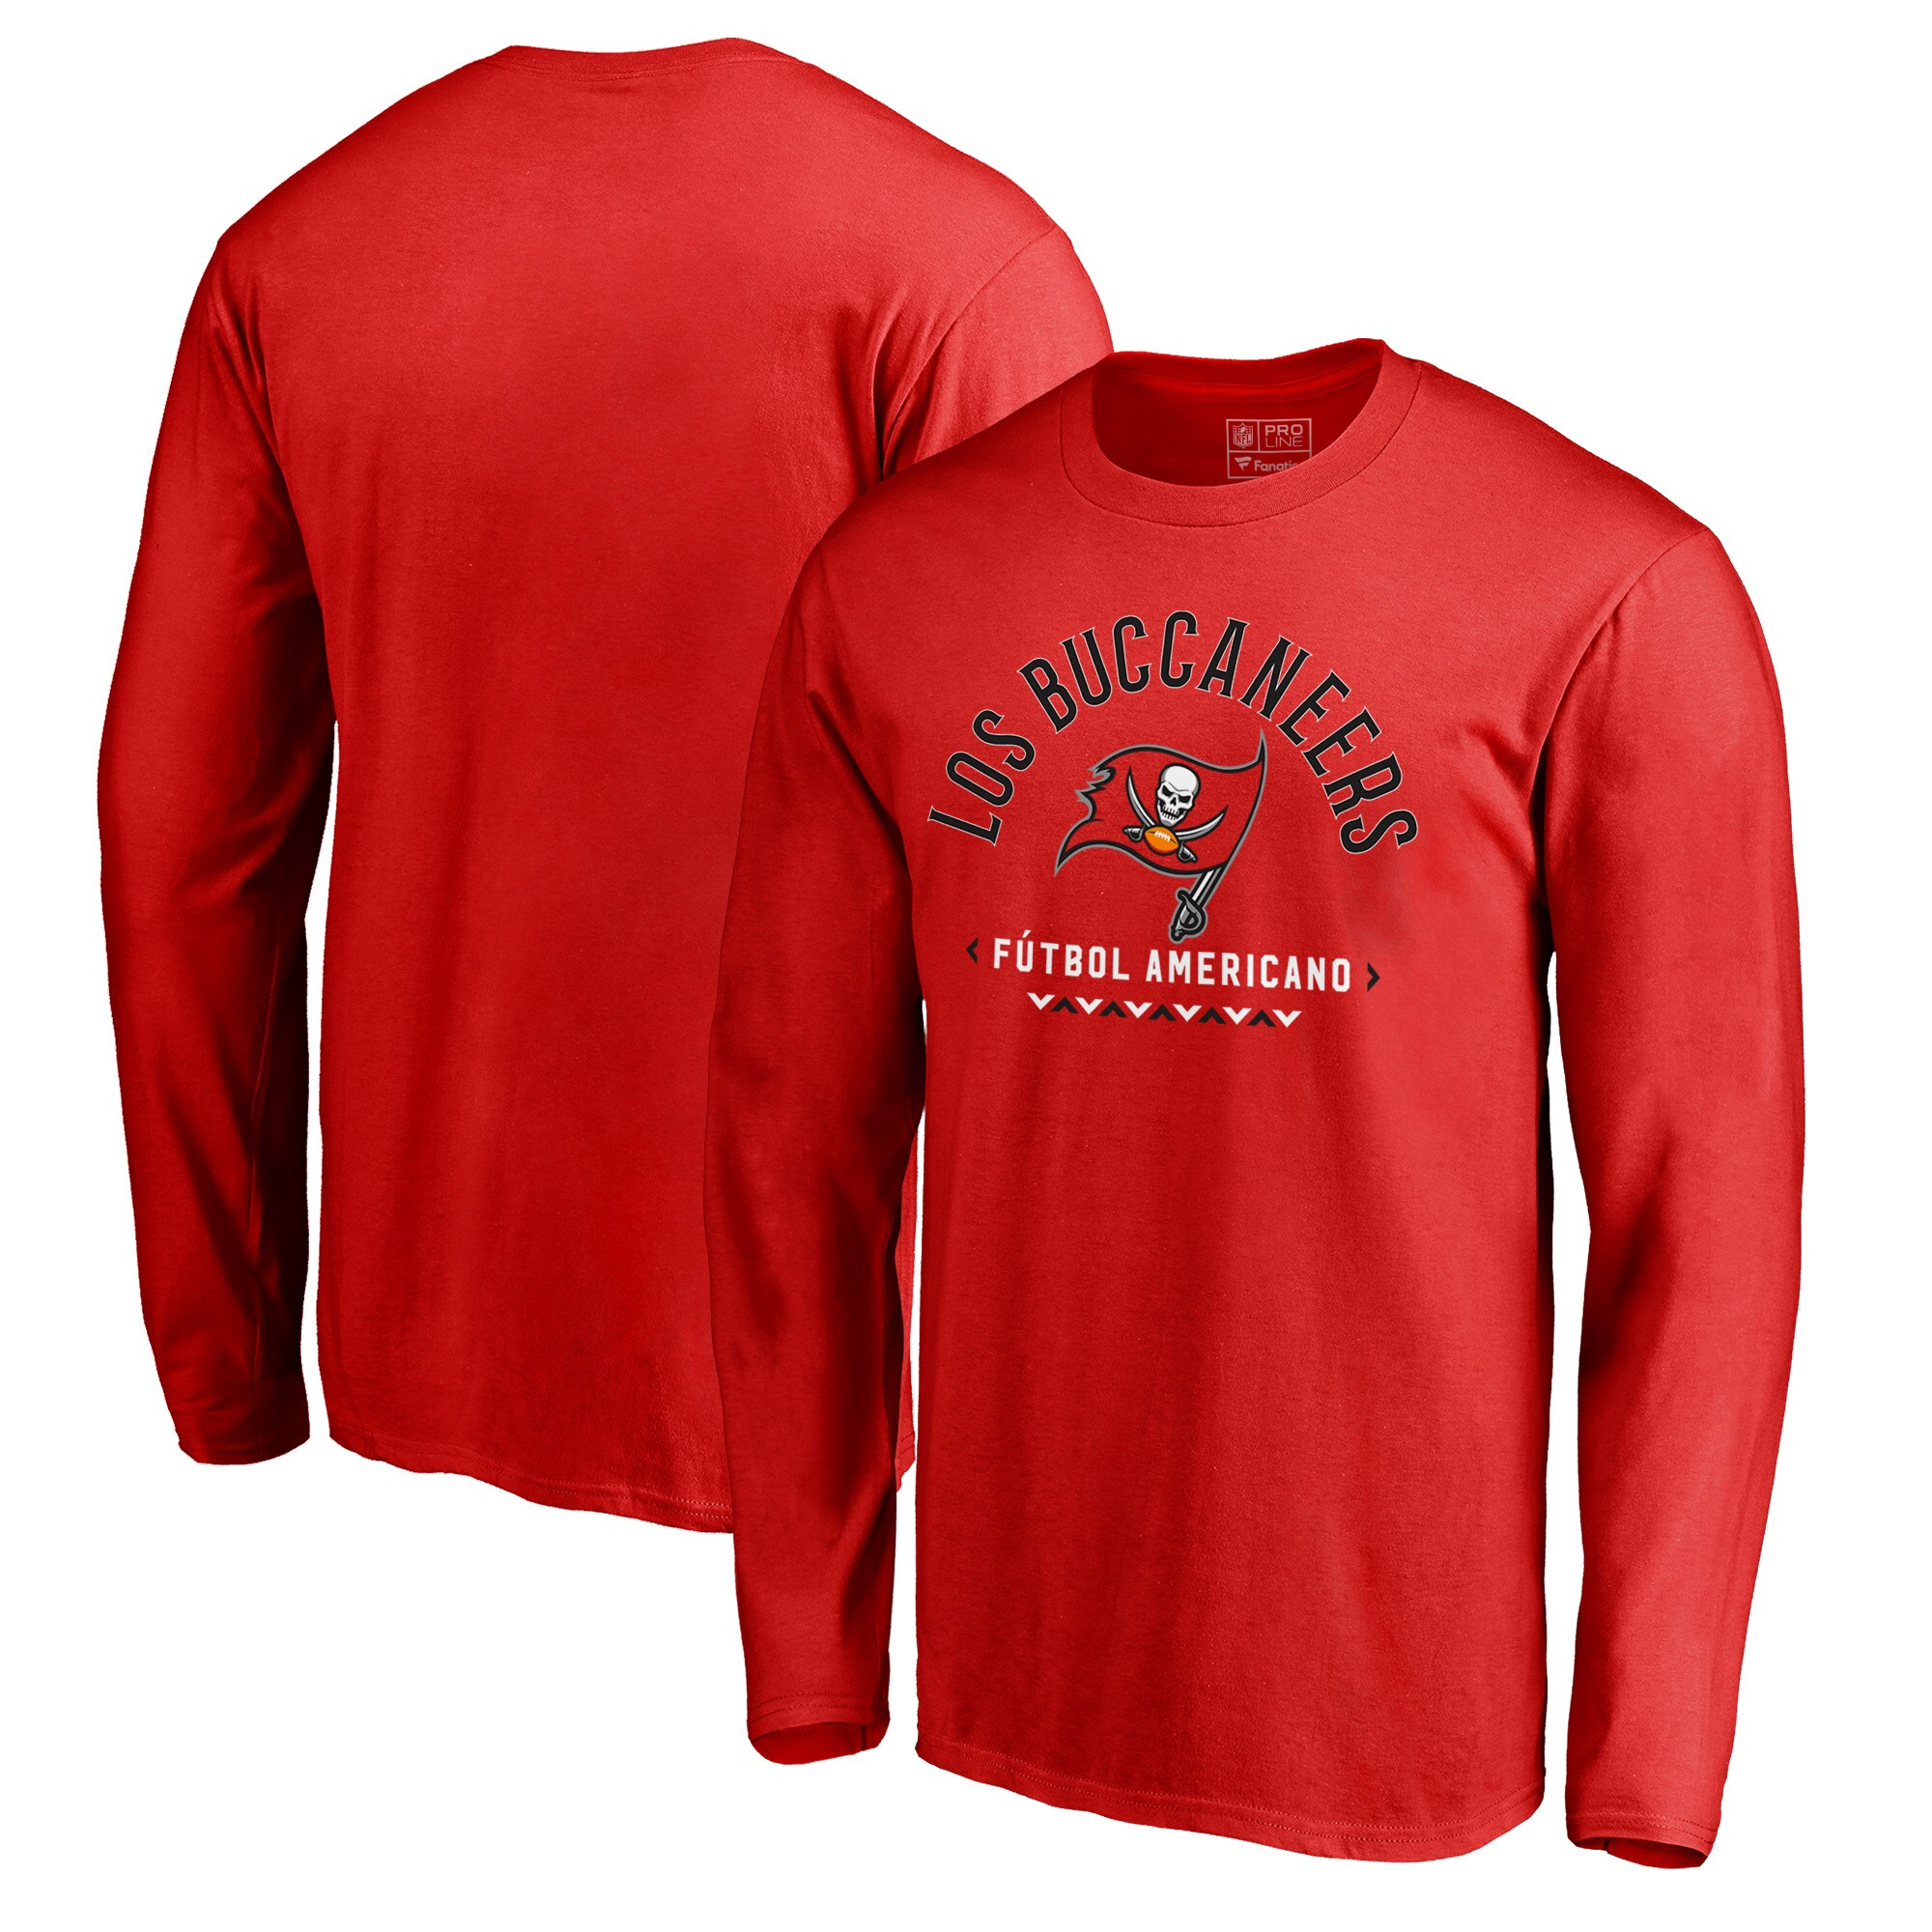 Tampa Bay Buccaneers NFL Pro Line by Fanatics Branded Futbol Americano Long Sleeve T-Shirt - Red